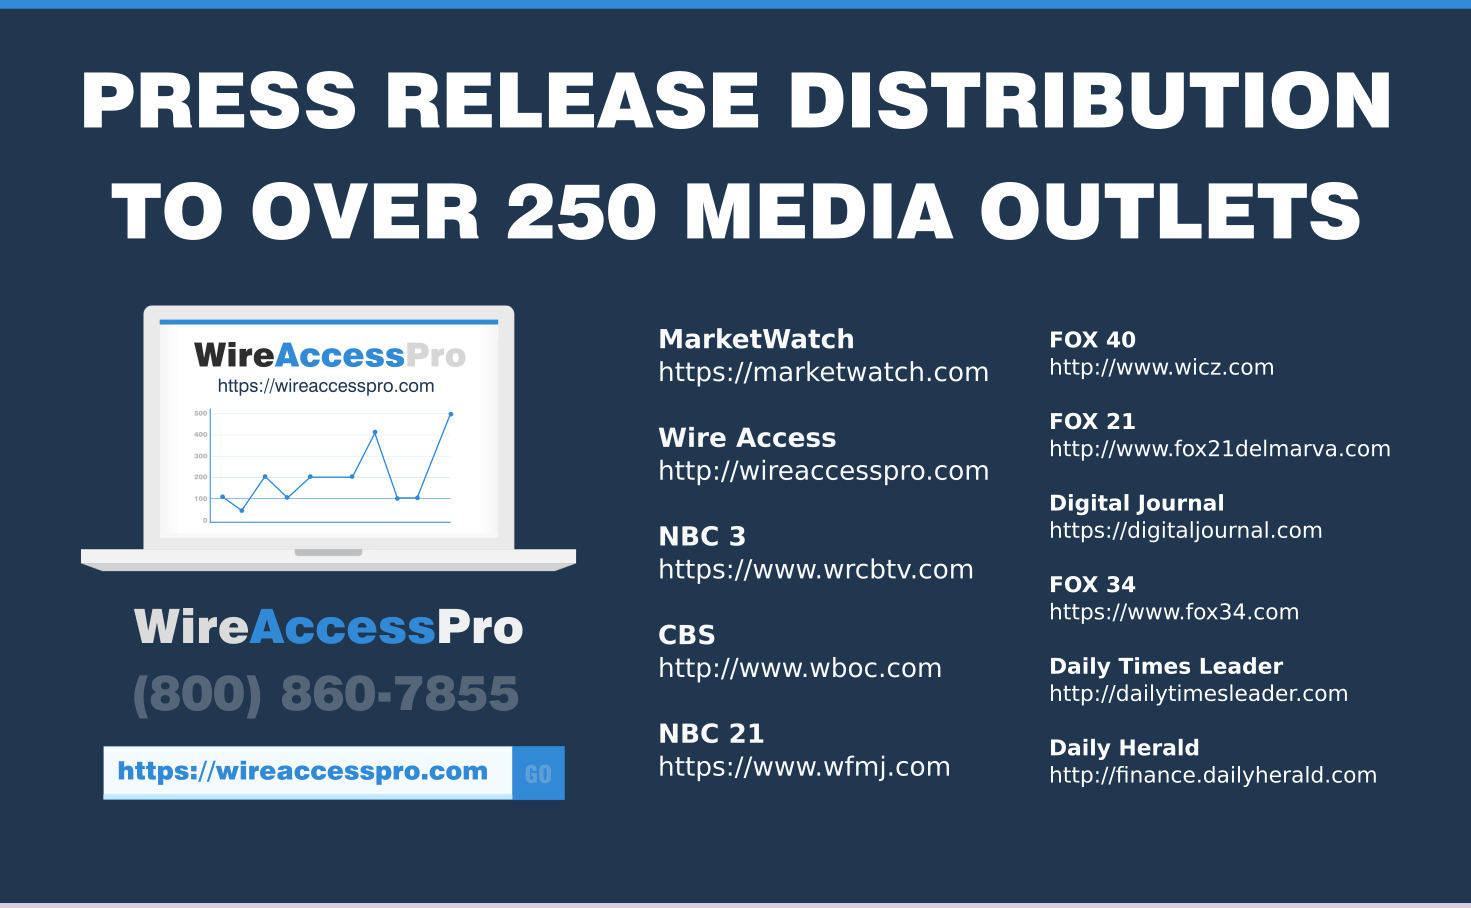 Press Release Distribution to over 250 News Sites